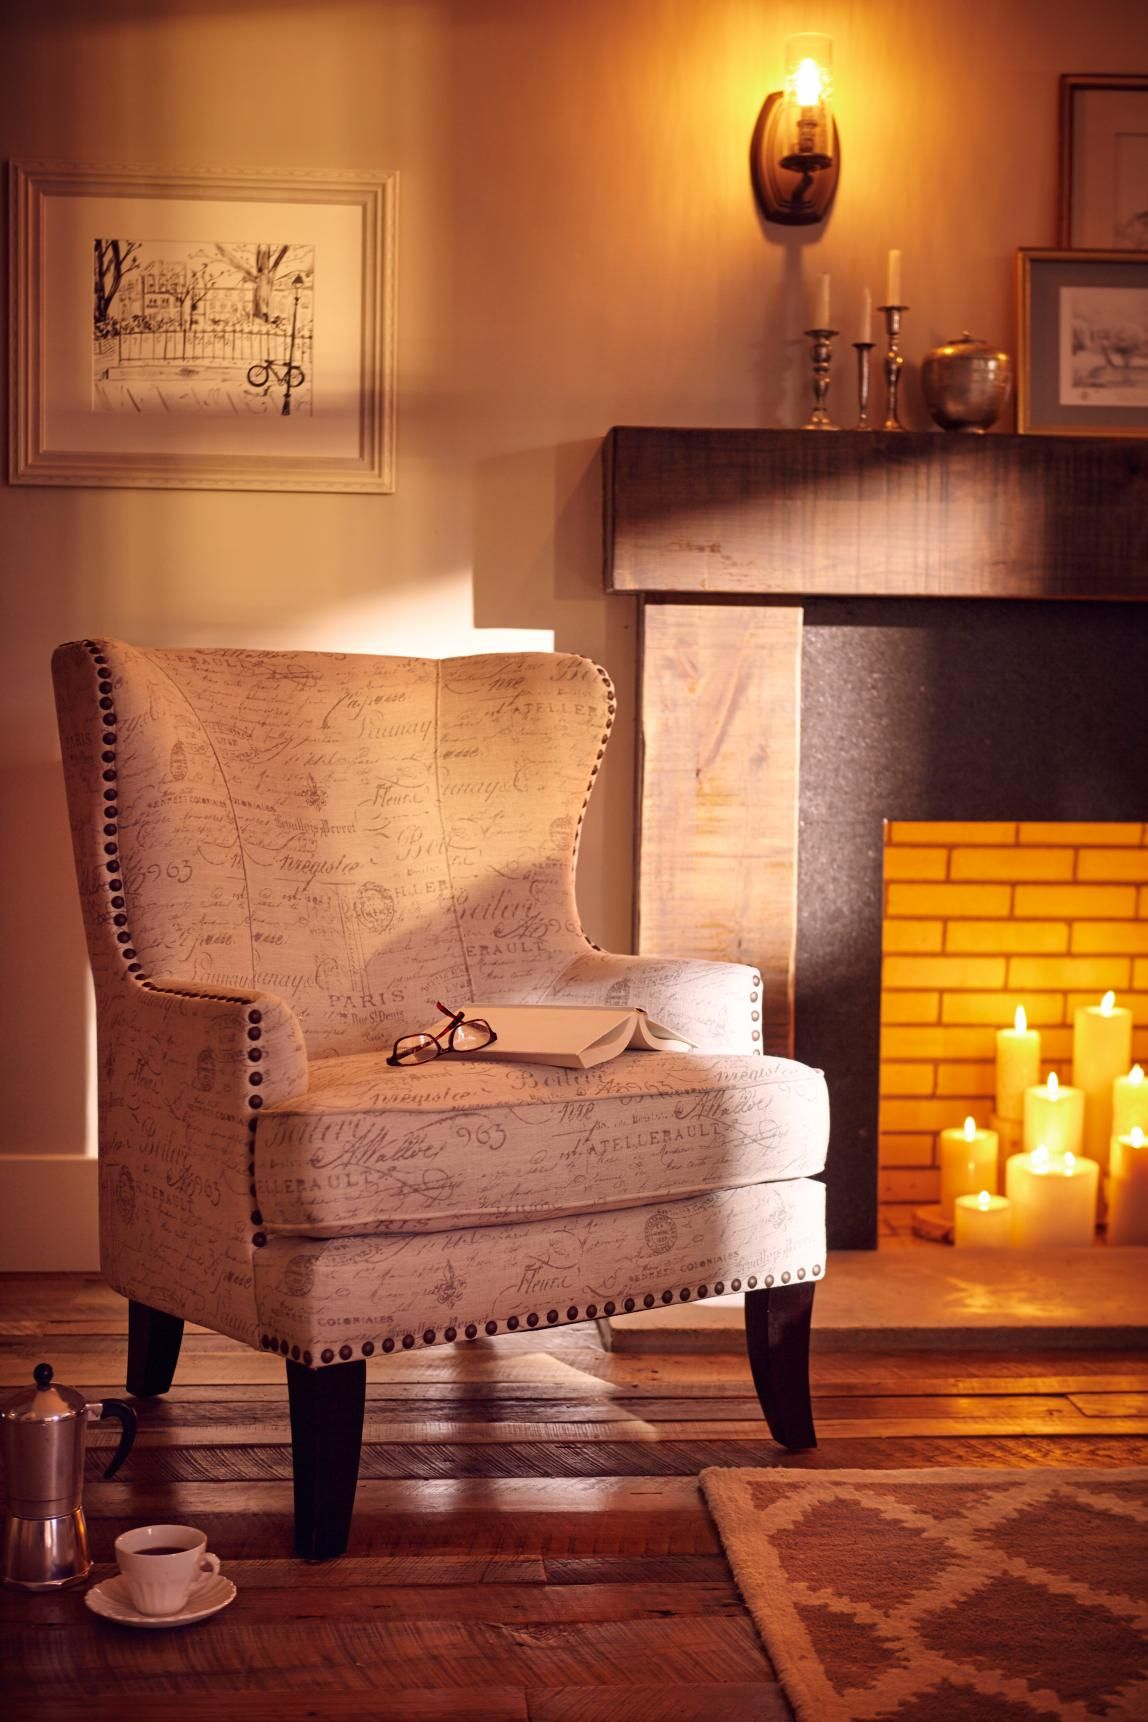 Cozy Up Next To The Fire On Our Super Soft And Comfy Marseille Chair Perfect For Cold Nights And Good Books Small Bedroom Decor Cozy Small Bedrooms Home Decor